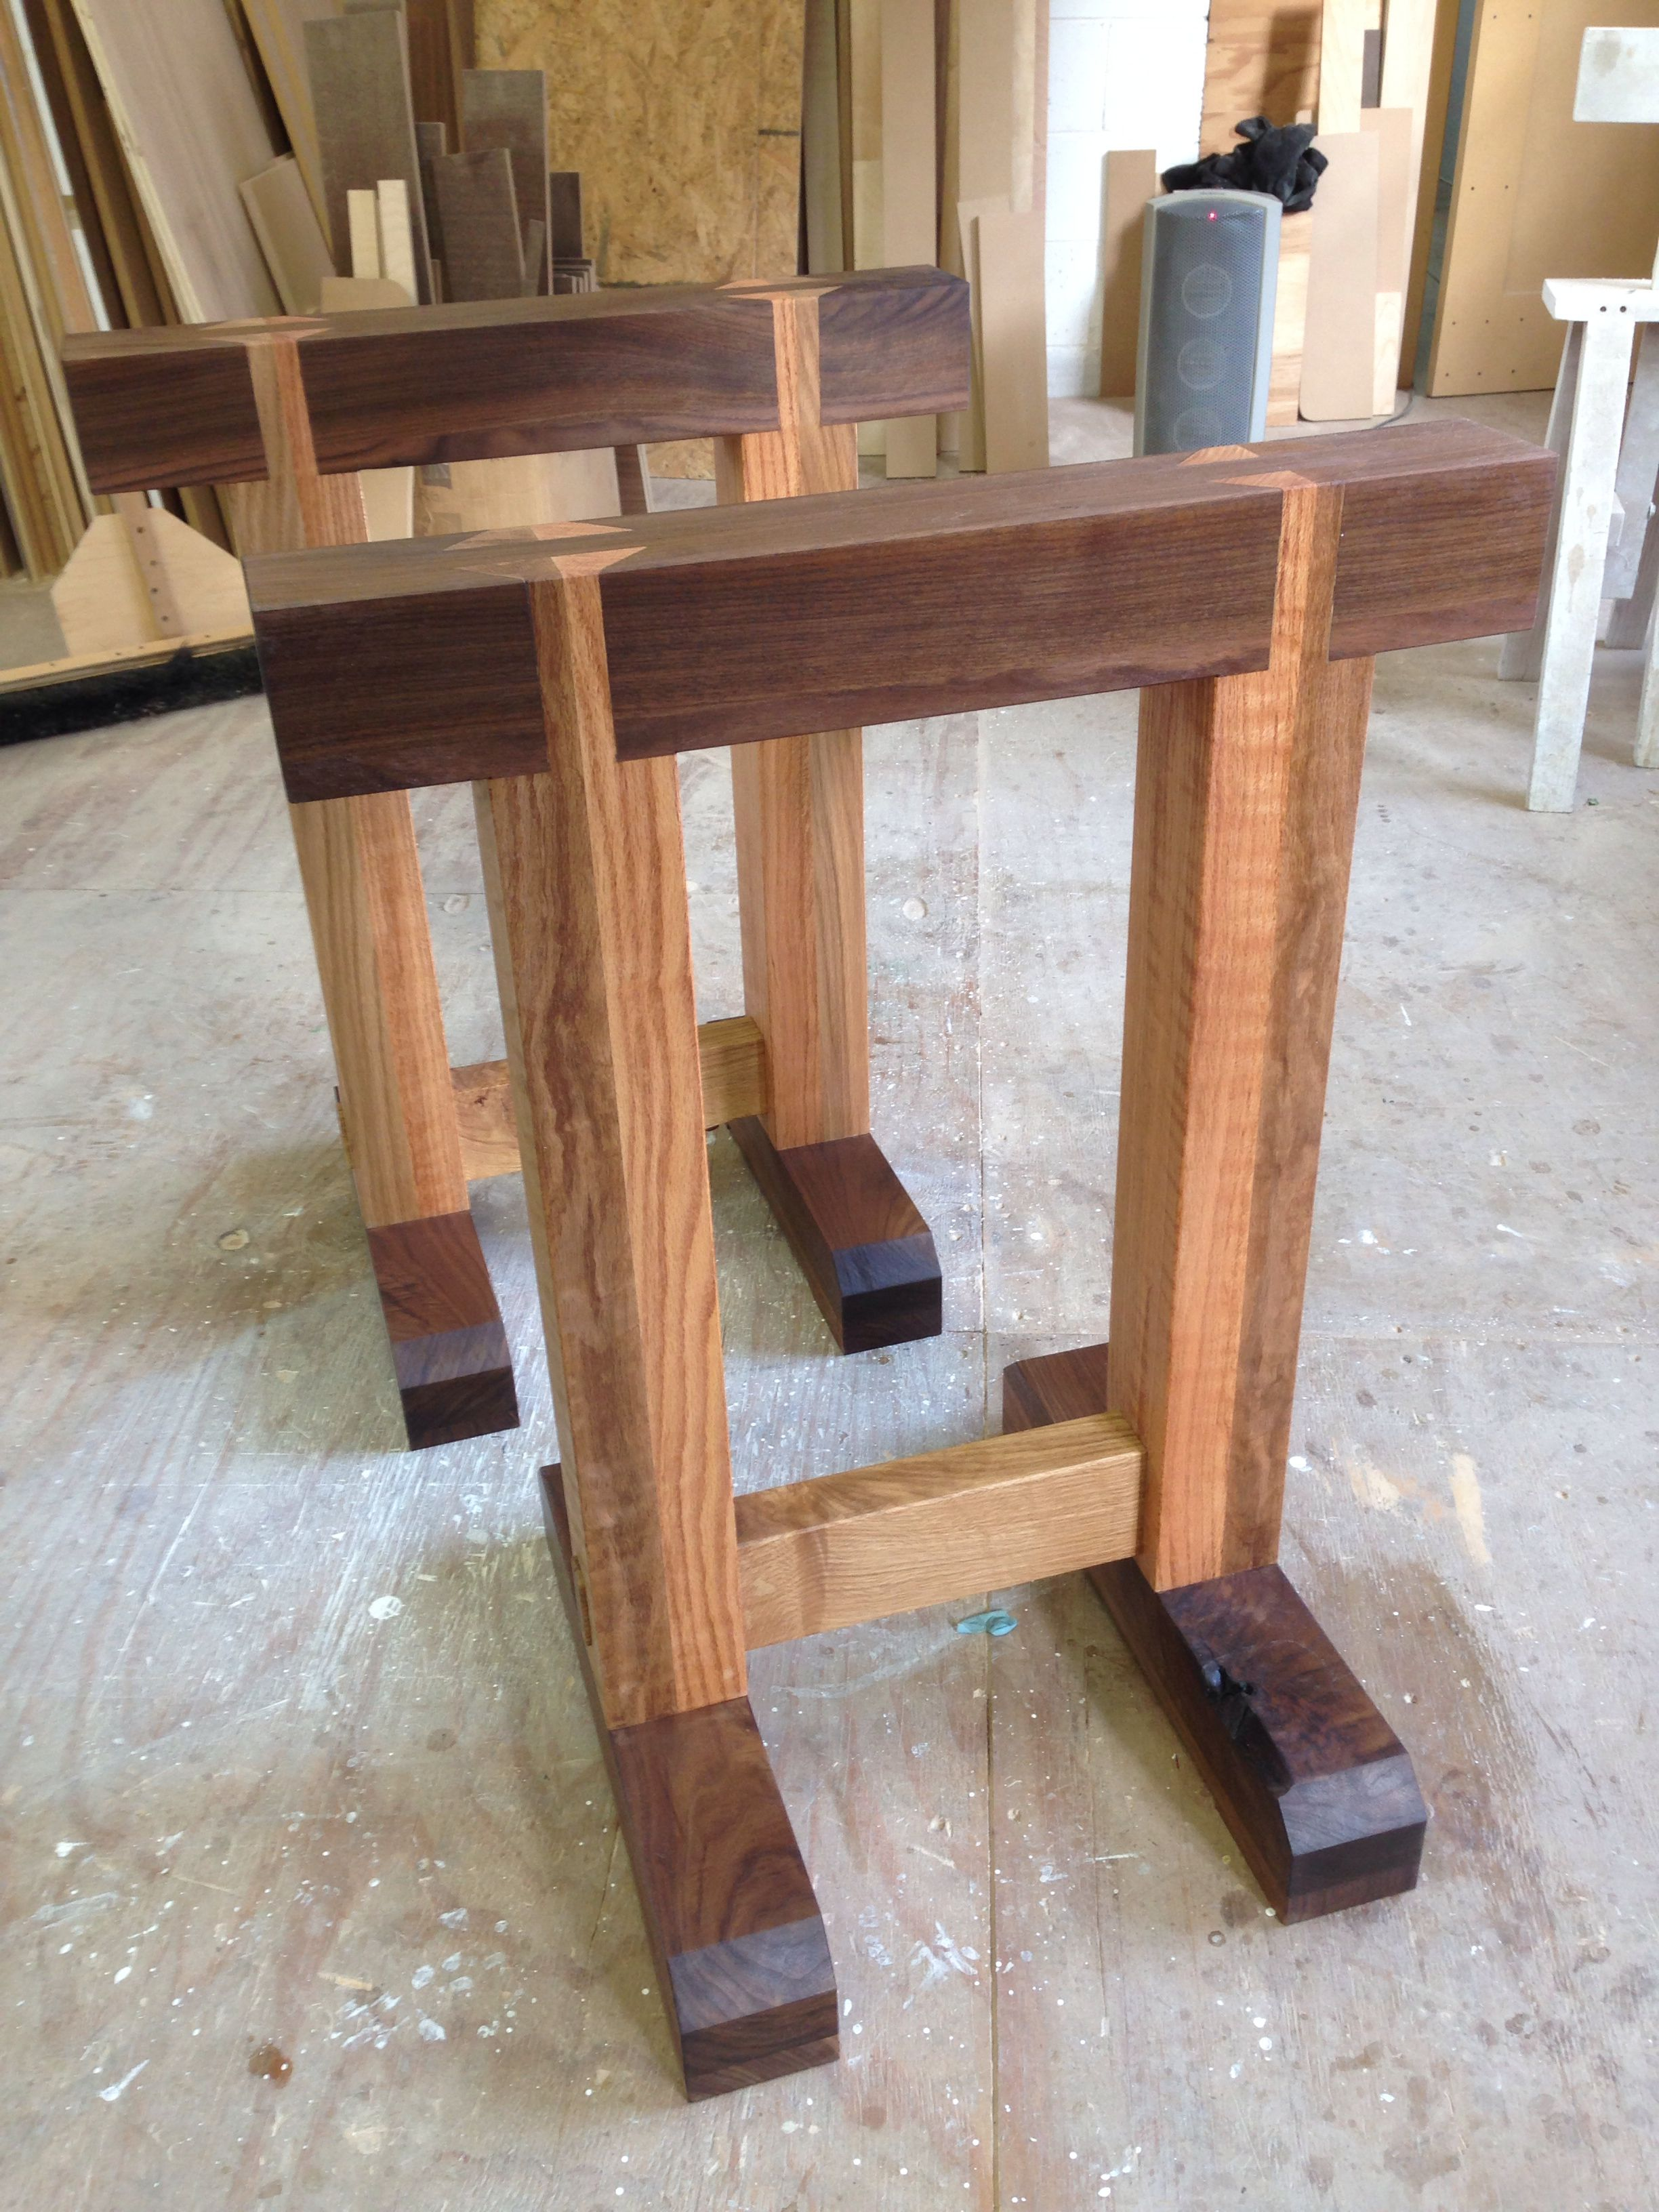 Heavy duty sawhorse can maybe make the legs adjustable